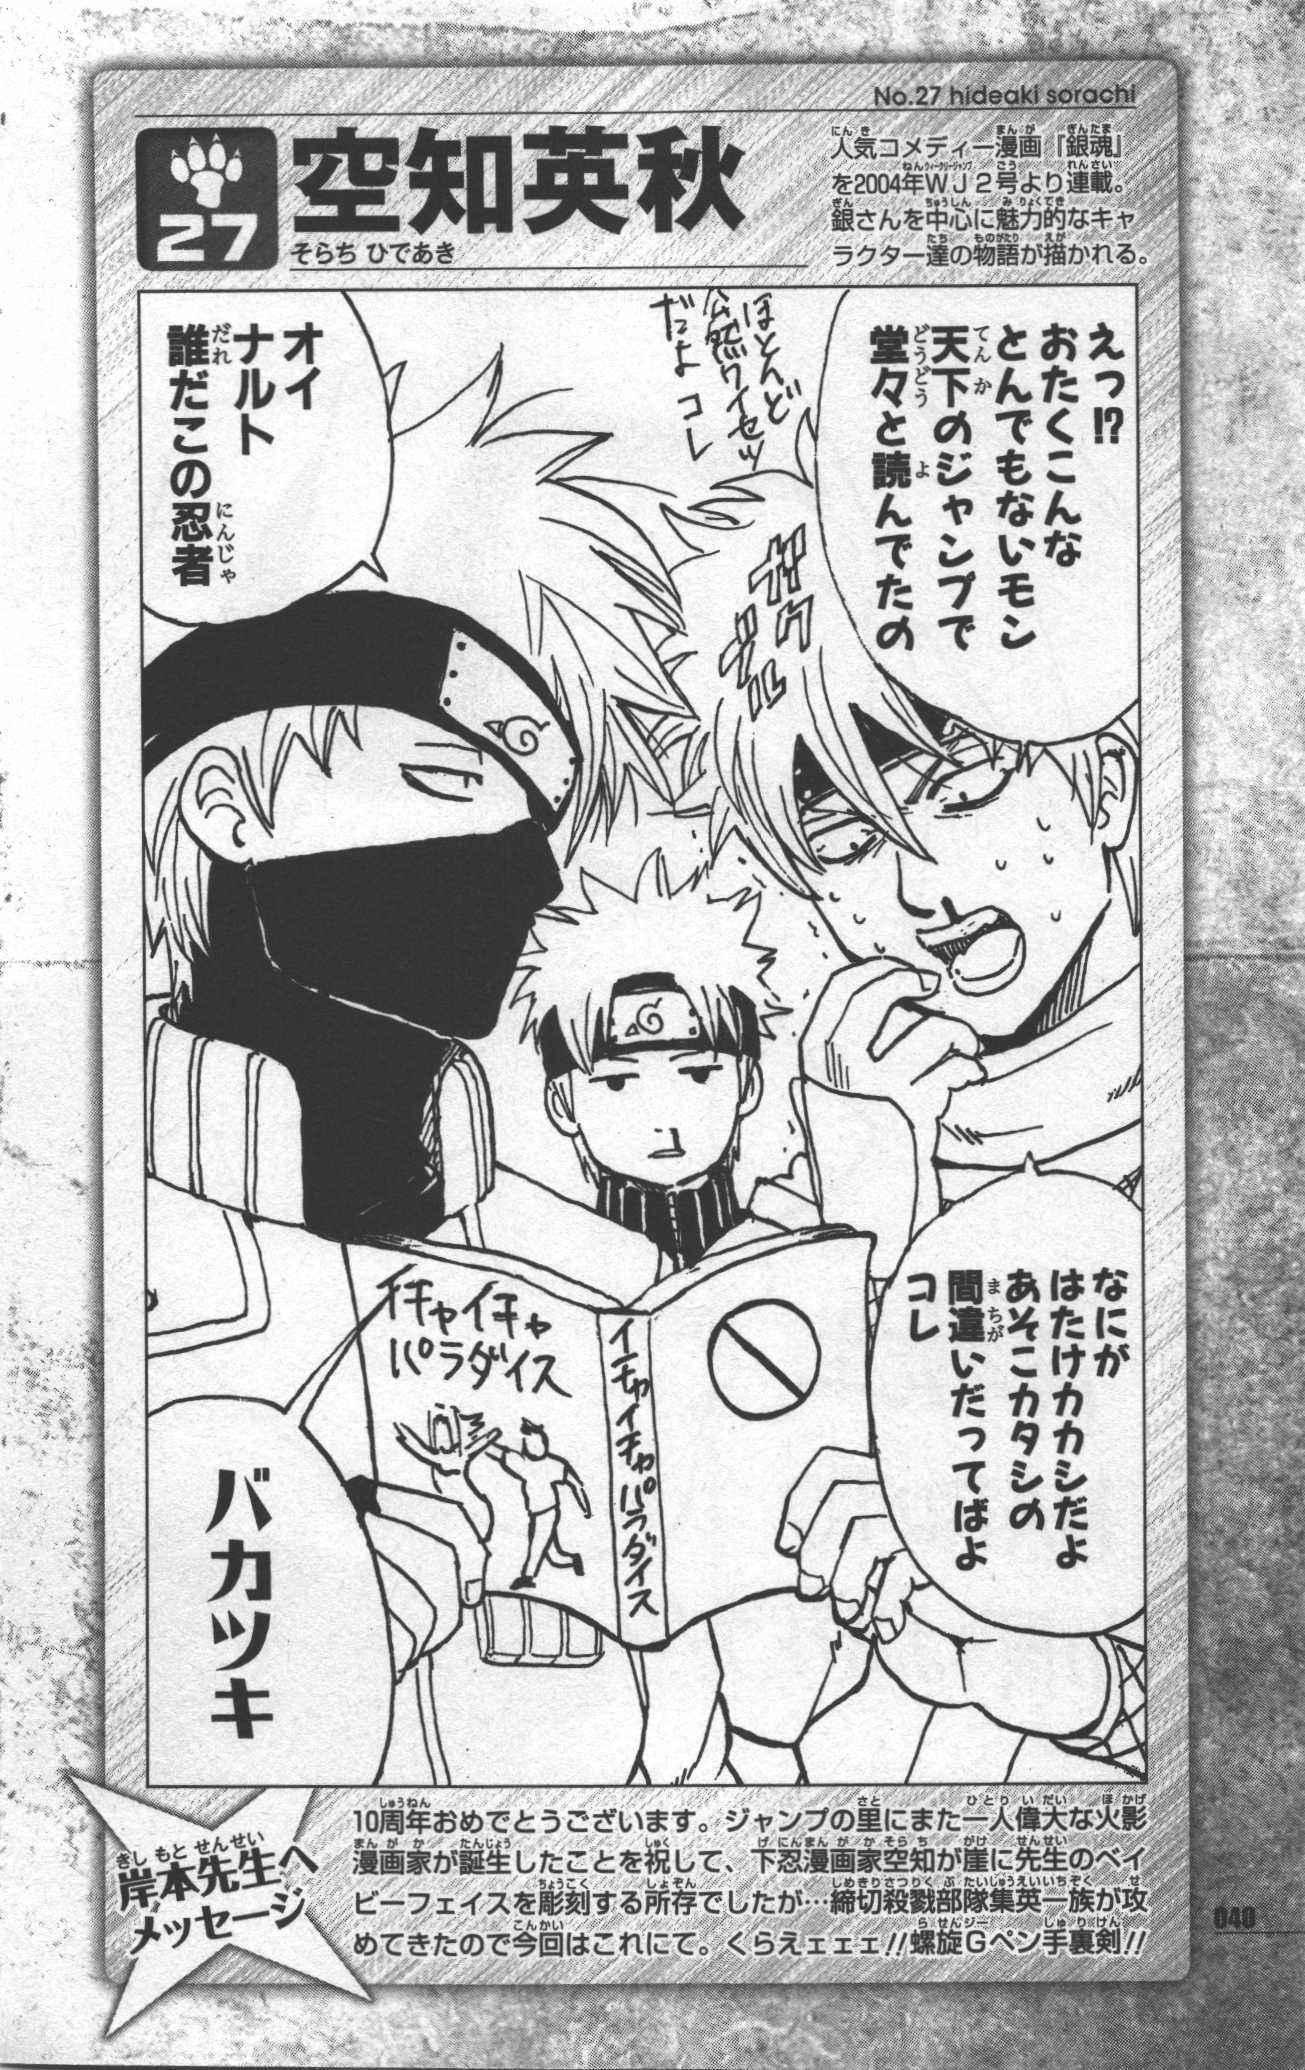 Anime TalkNaruto 10th Anniversary Tribute Drawn by Other Popular Manga Artists